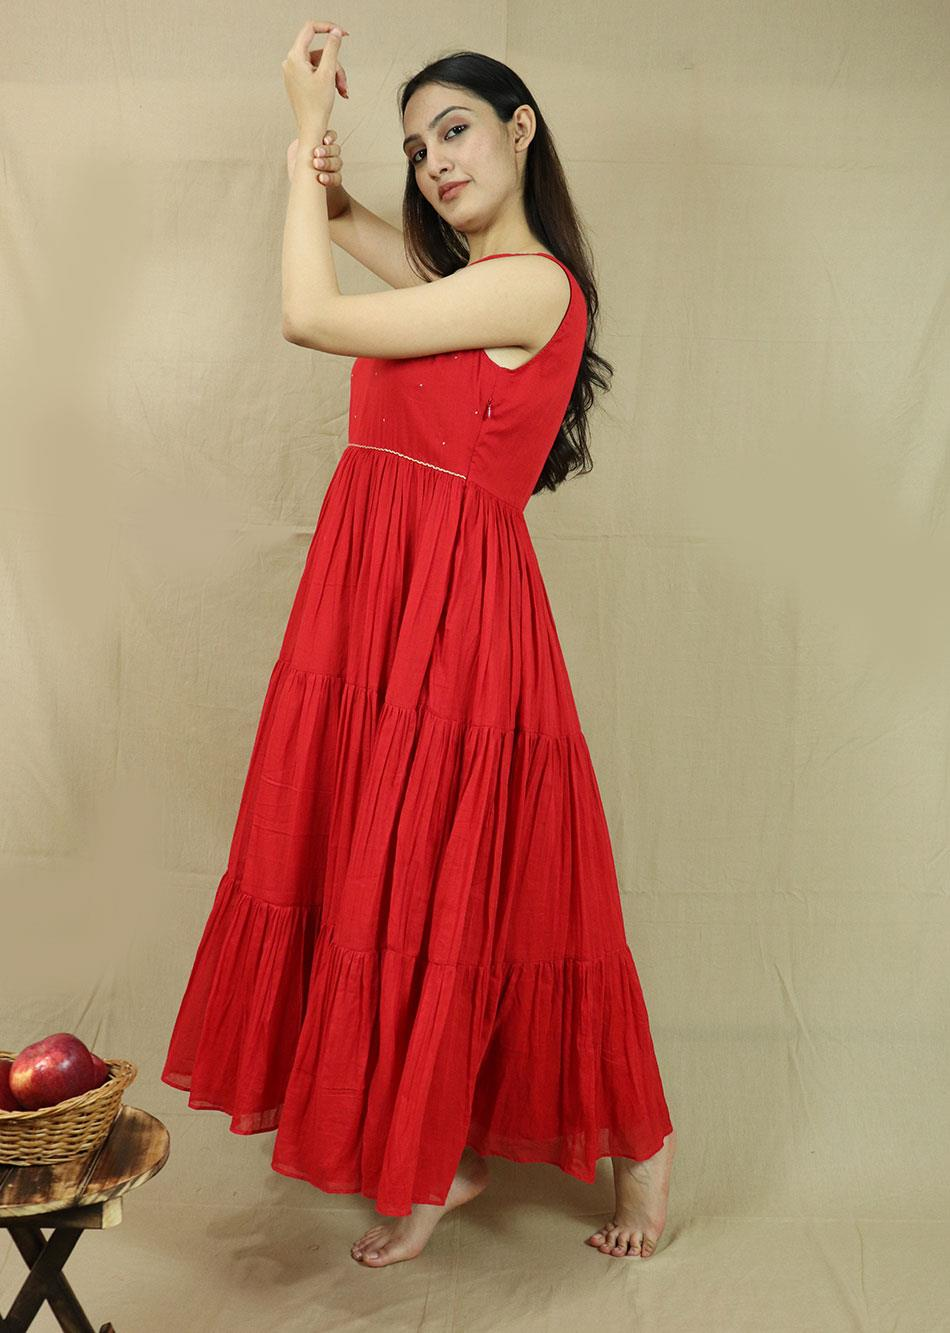 Red Tiered Dress  By Jovi Fashion